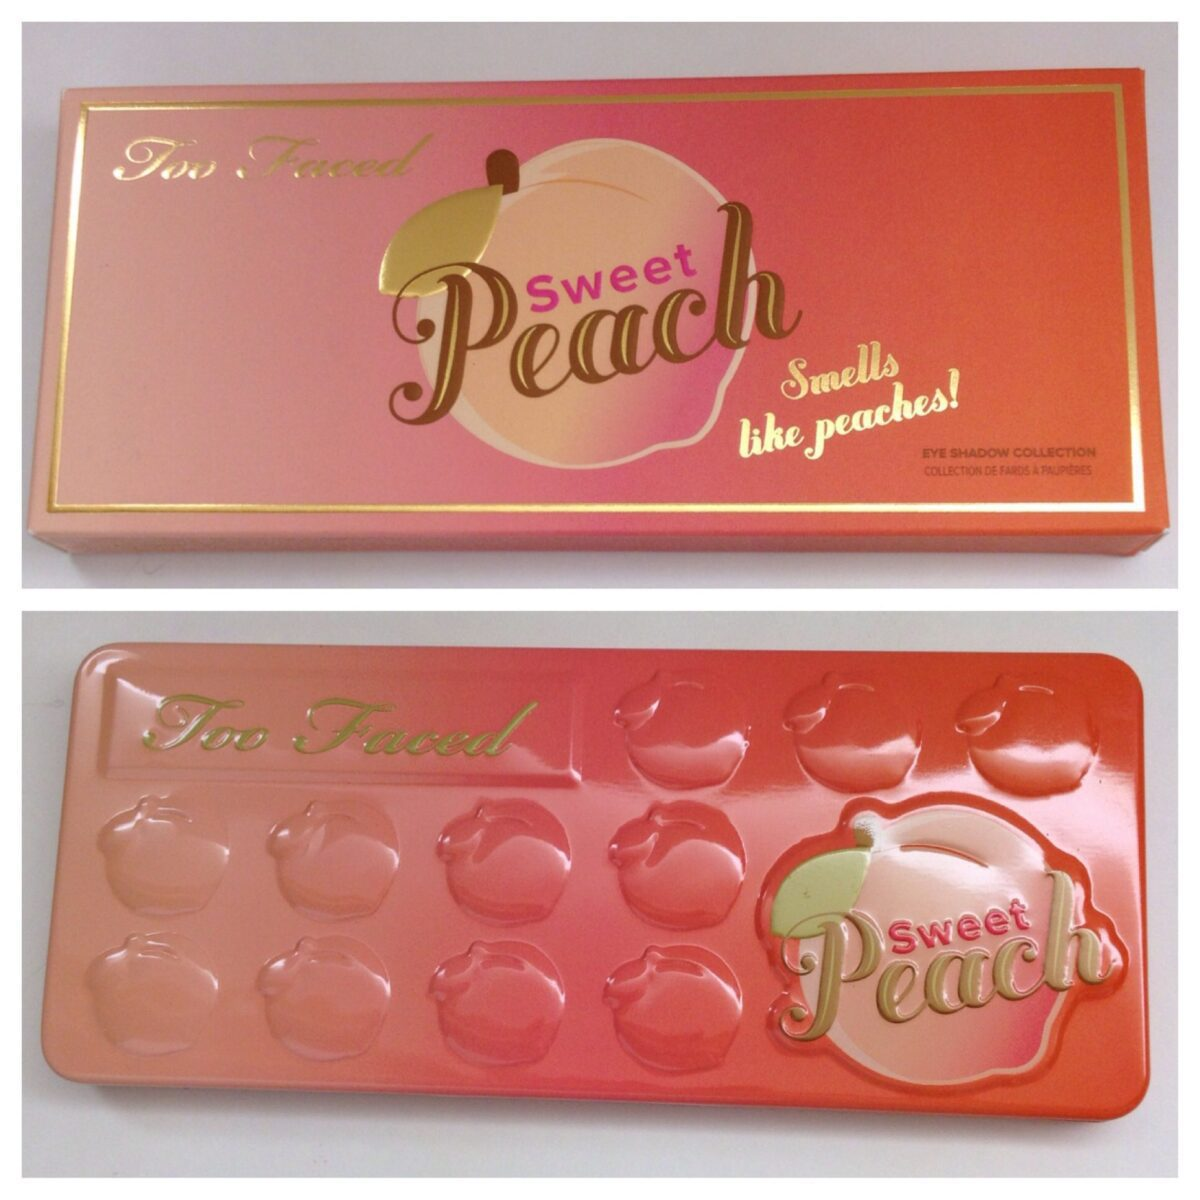 Two-faced-sweet-peach-packaging-box-and-tin-box